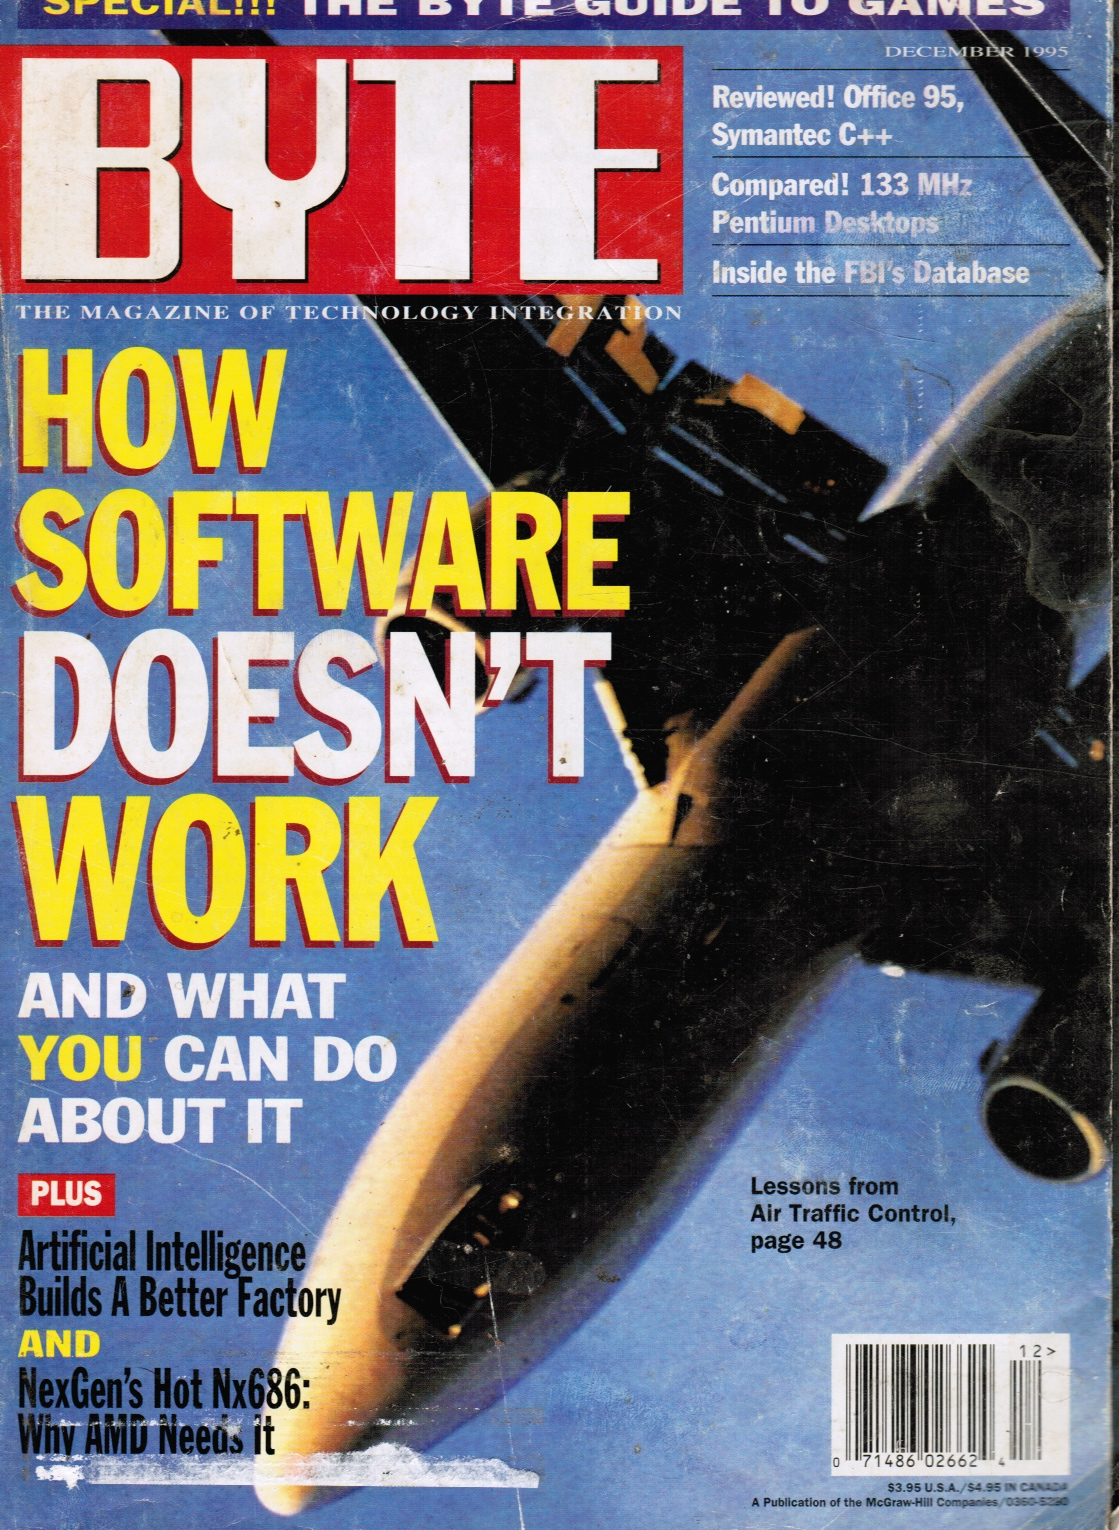 Image for BYTE Magazine December 1995:  Special Issue - the Byte Guide to Games